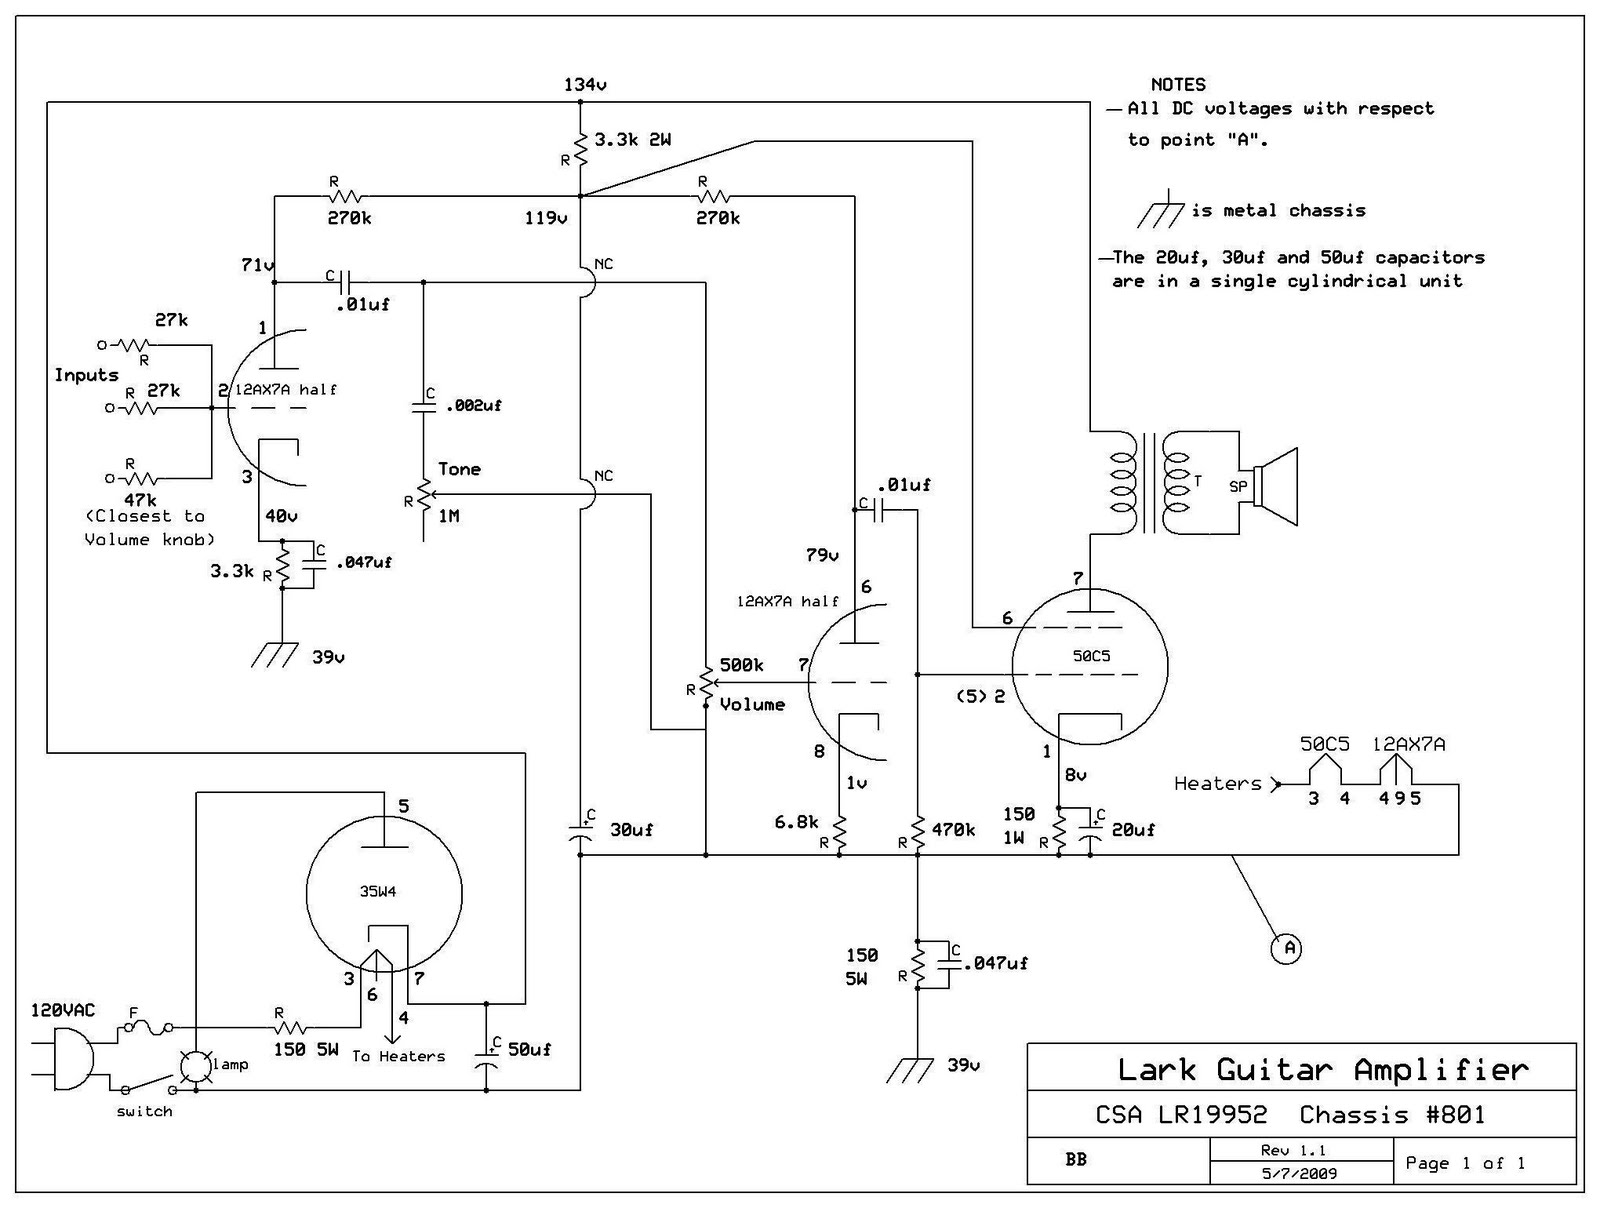 Lark Wiring Diagram Diagrams Schematics 1960 Studebaker Poulan Pepco Tube Amps September 2010 Schematic V1 09